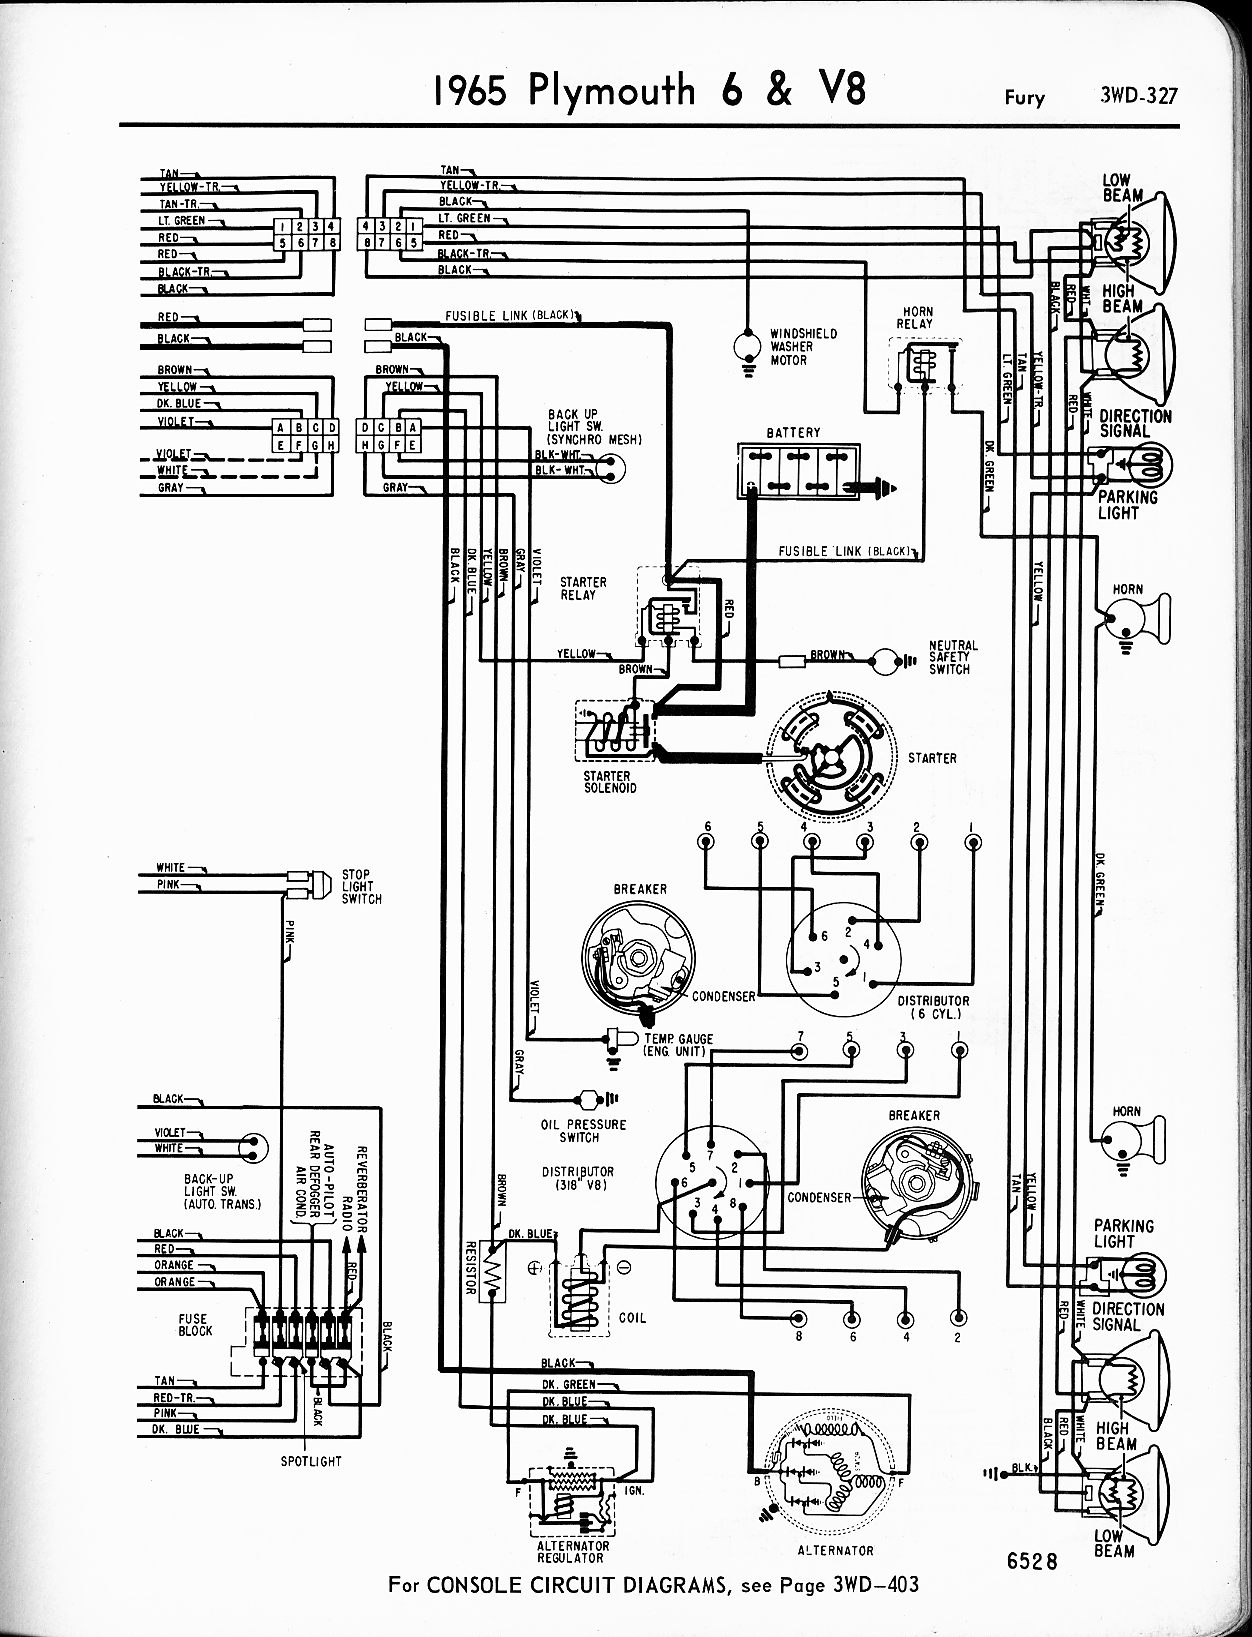 48 mercury wiring diagram wiring diagram C5 Corvette Engine Diagram 48 mercury wiring diagram vyn zaislunamai uk u202248 mercury wiring diagram wiring diagram post rh